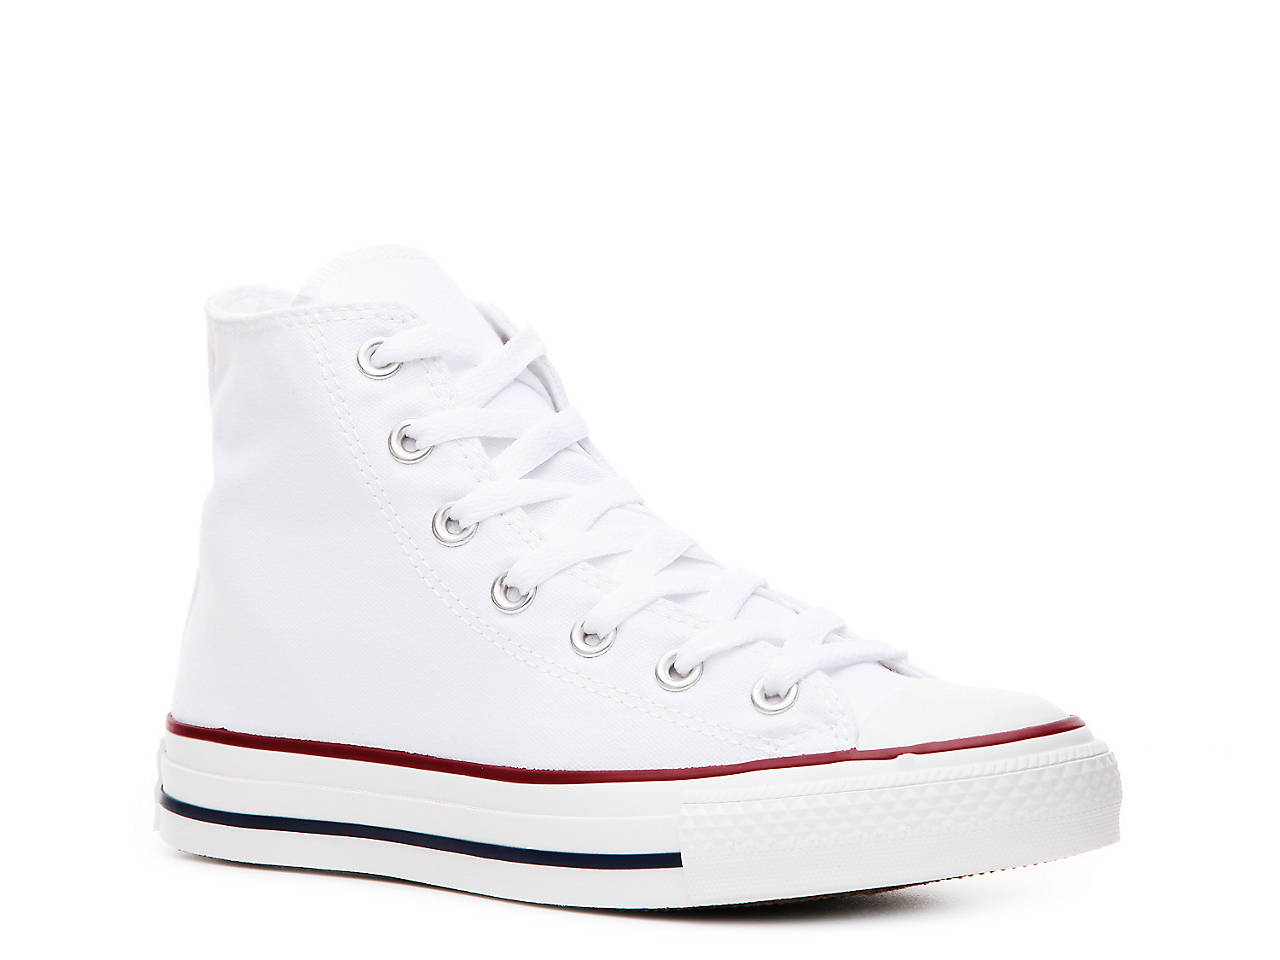 0c44b94fc45 Converse Chuck Taylor All Star High-Top Sneaker - Women s Women s ...